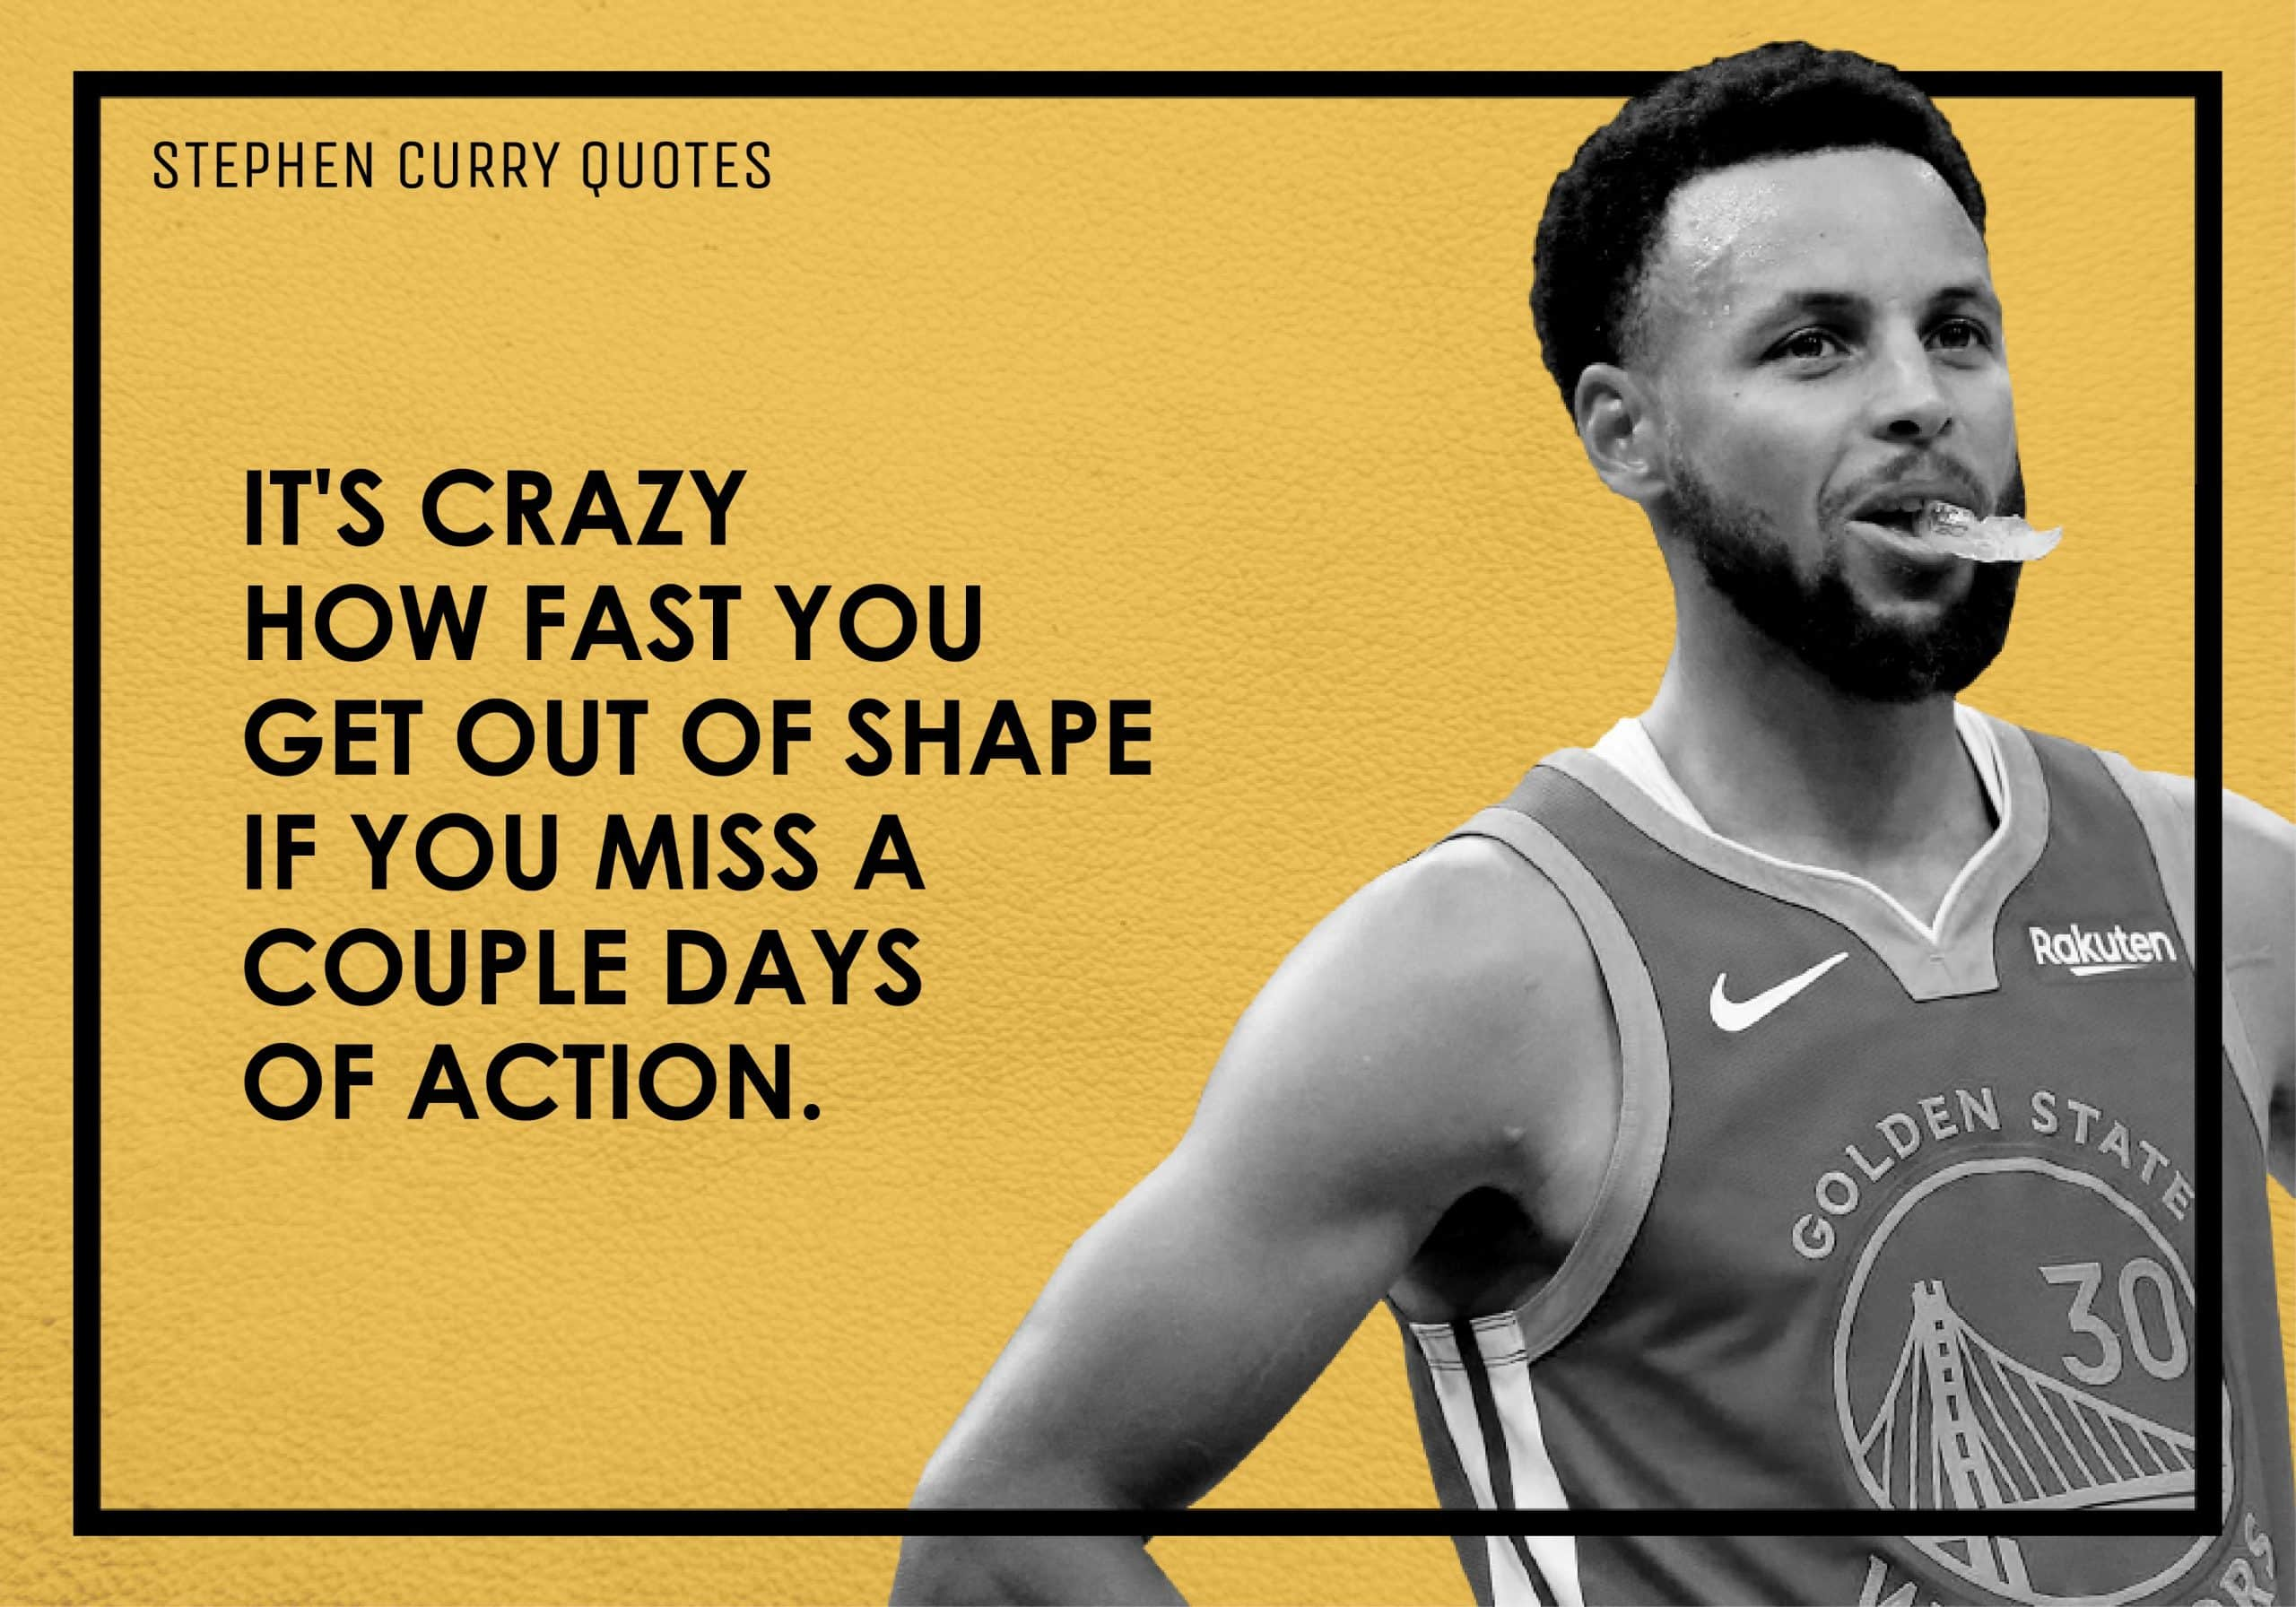 Stephen Curry Quotes (11)